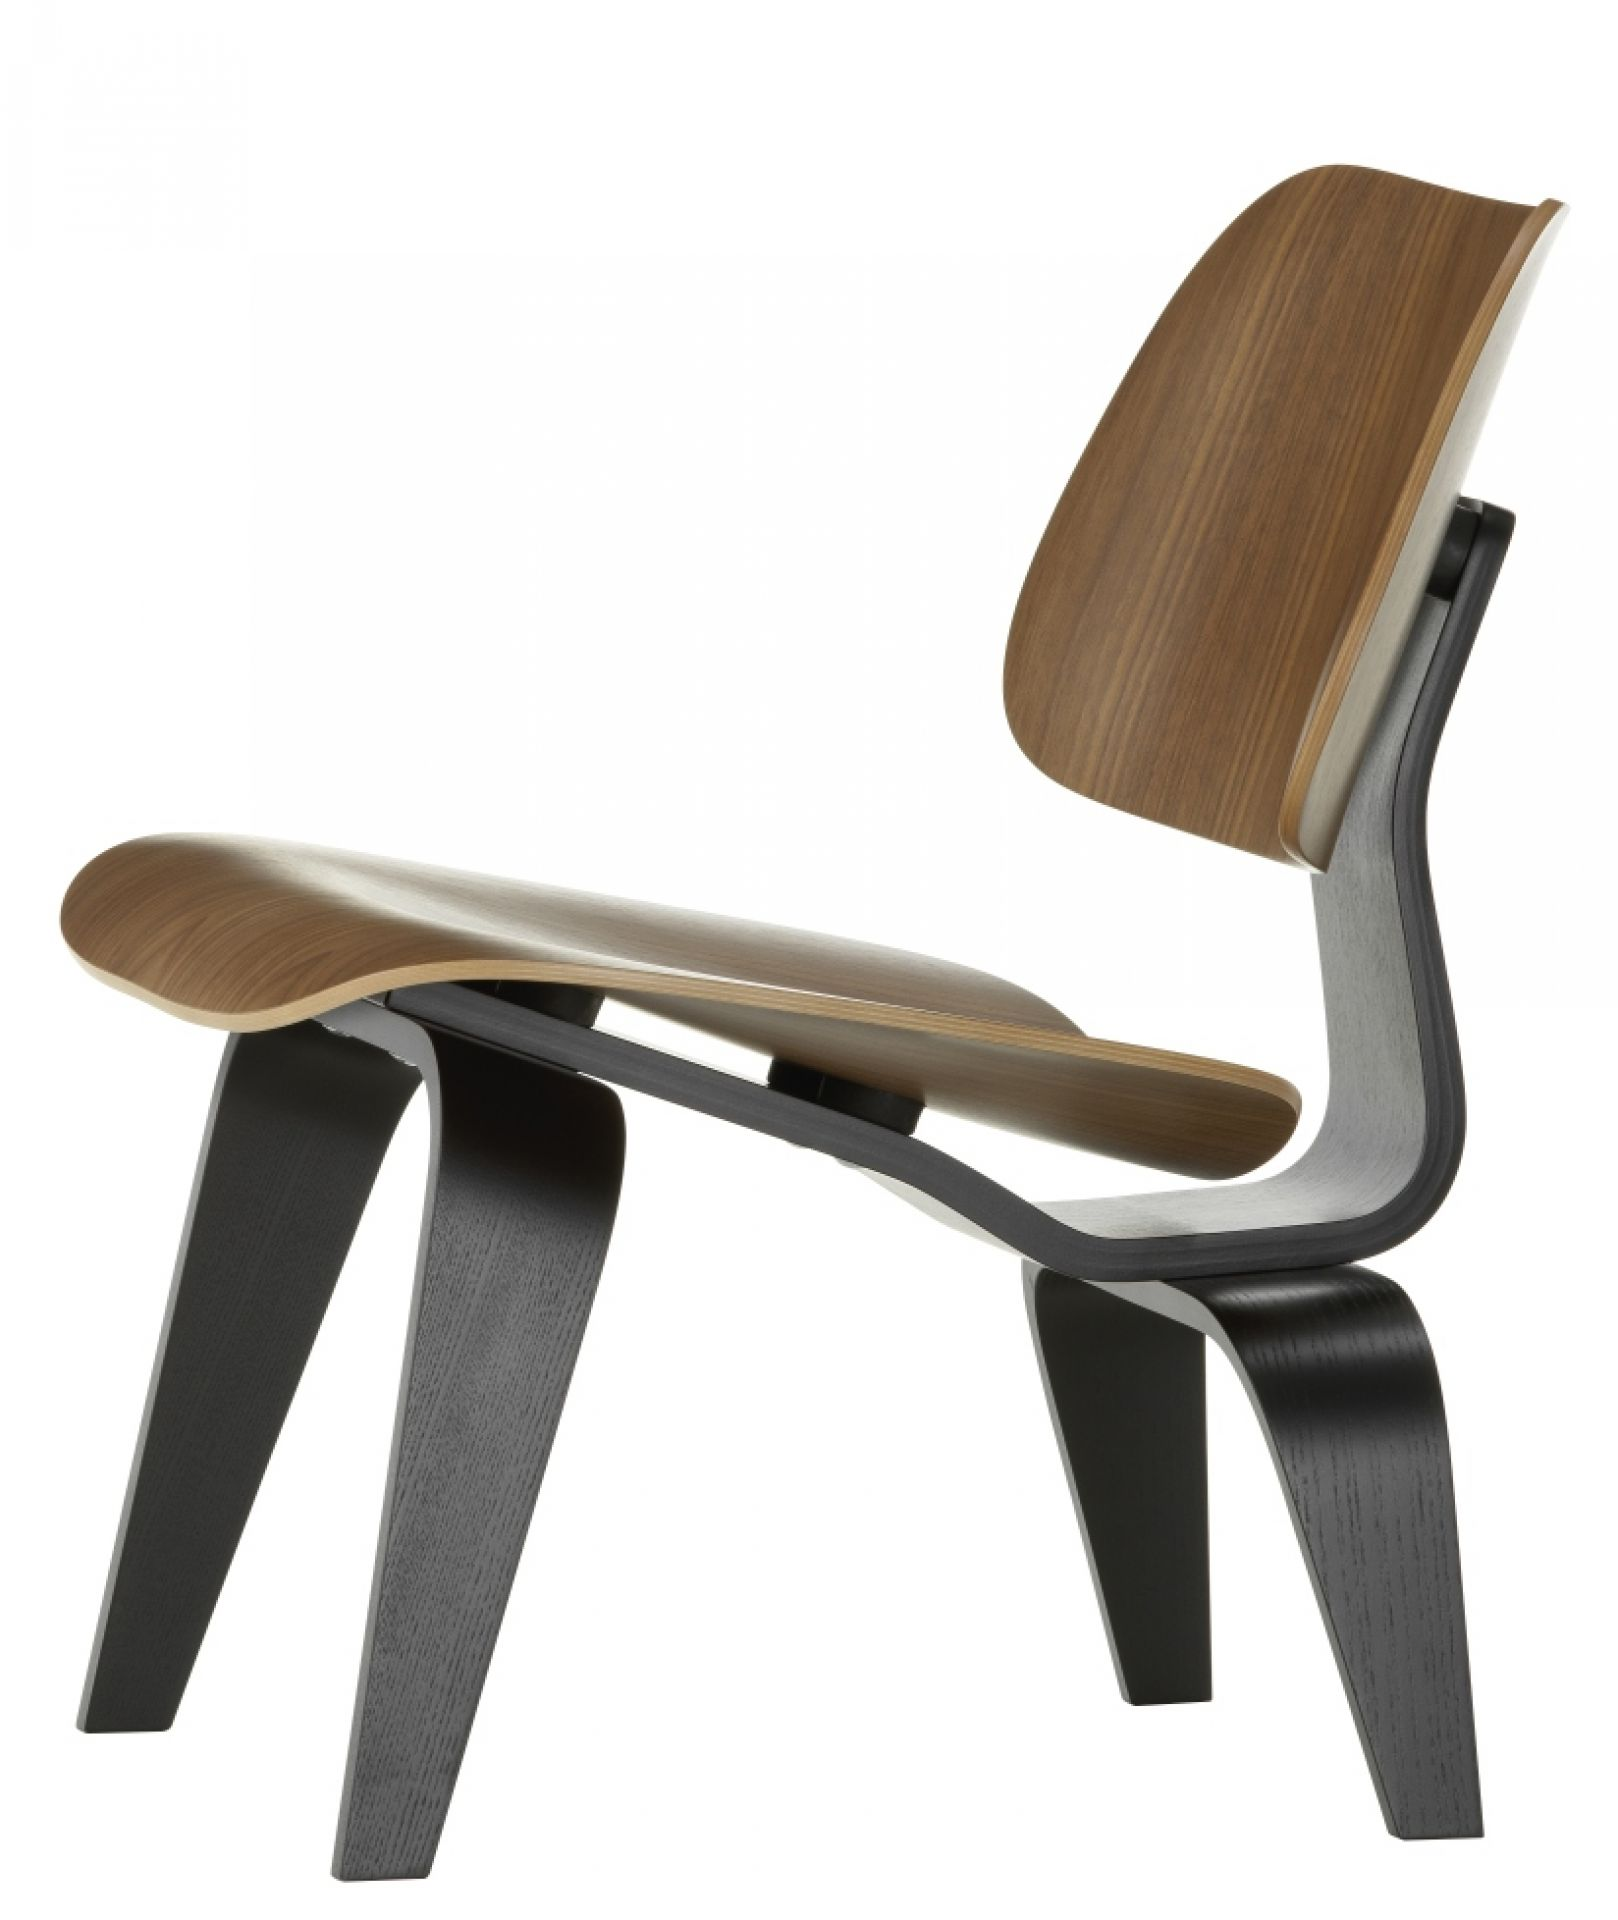 Plywood Group LCW 75th Anniversary Edition Chaise Vitra LIMITED EDITION